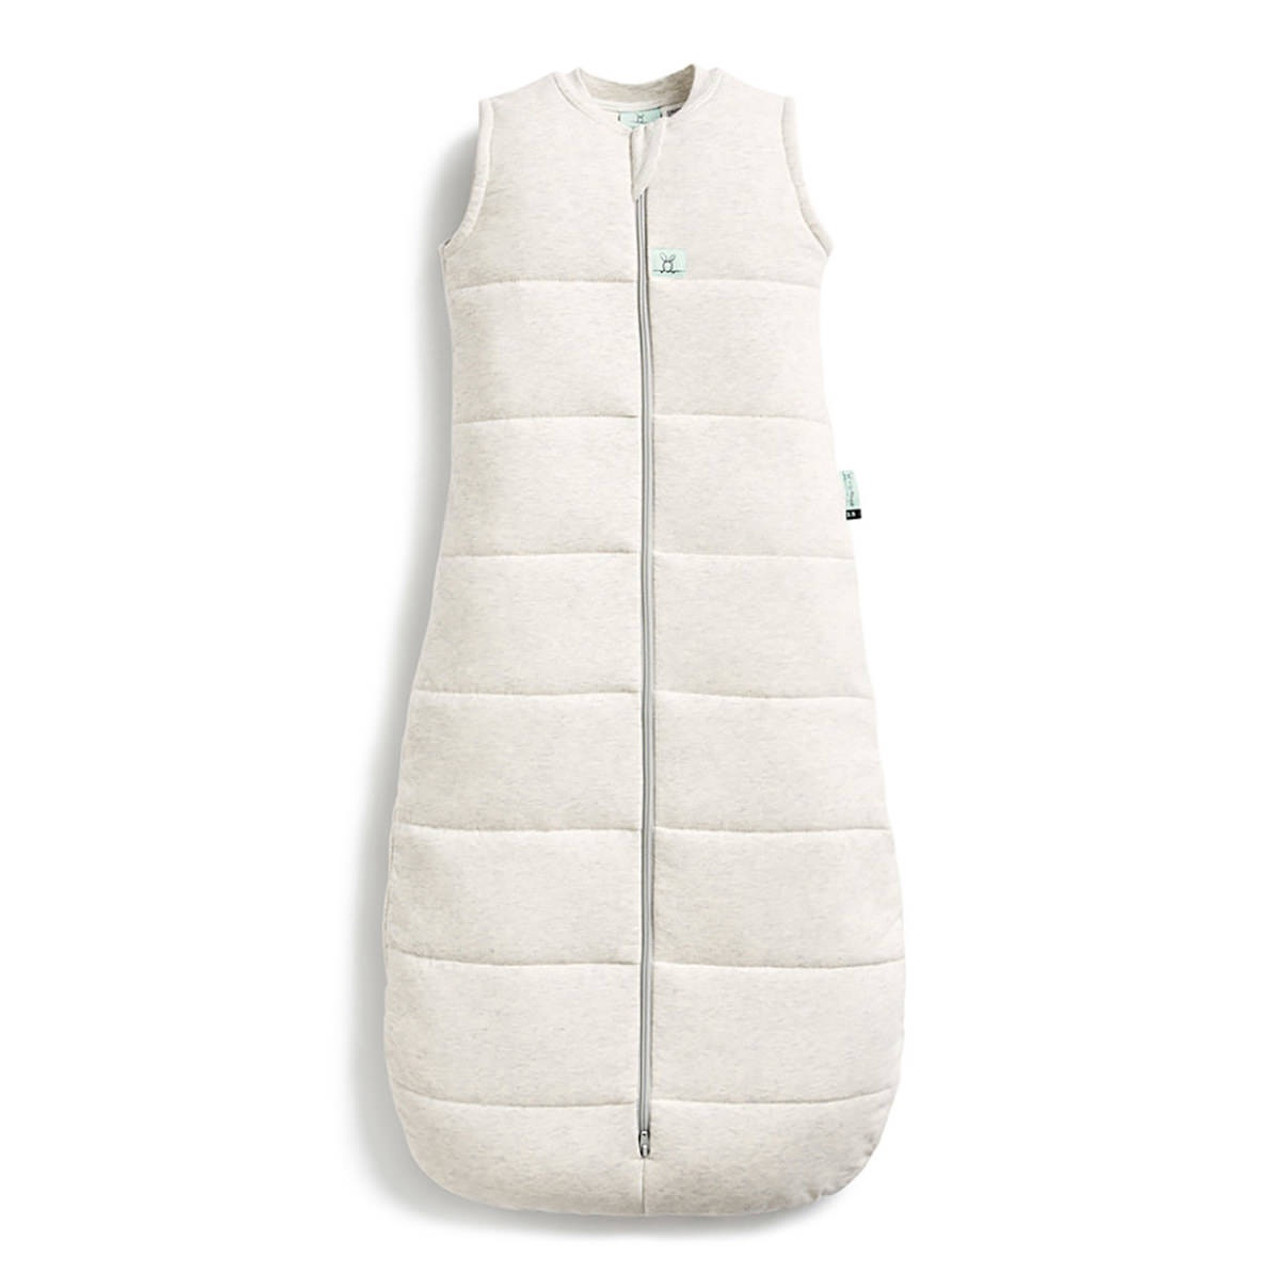 Ergopouch 2.5 tog Jersey Sleeping Bag 8 - 24 Months - GREY MARLE